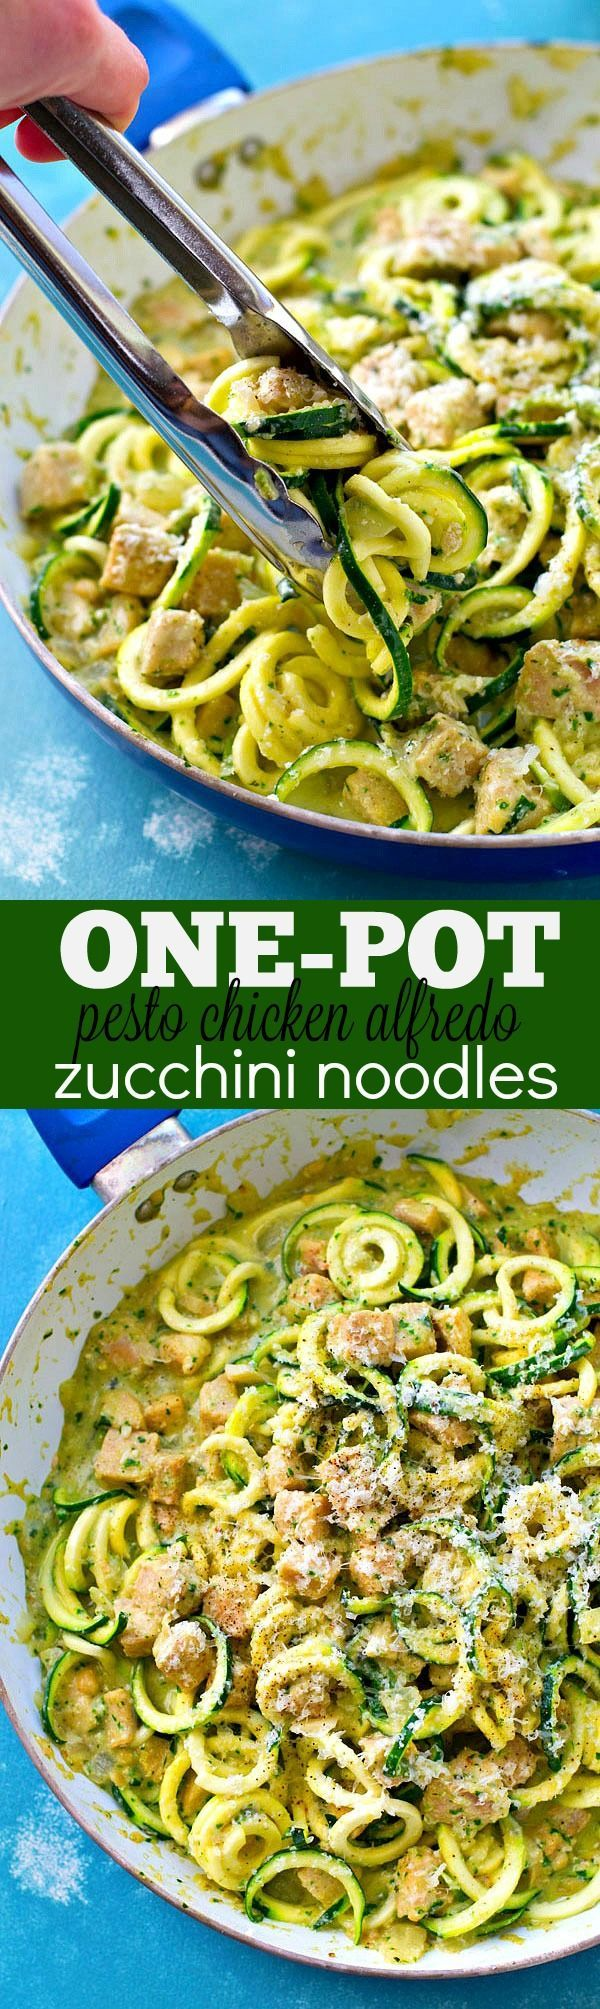 These super-creamy alfredo zucchini noodles get TONS of flavor kicked up by fresh pesto and tender chicken cubes makes it an entire carb-free meal! This one-pot dinner is the comfort food your weeknig